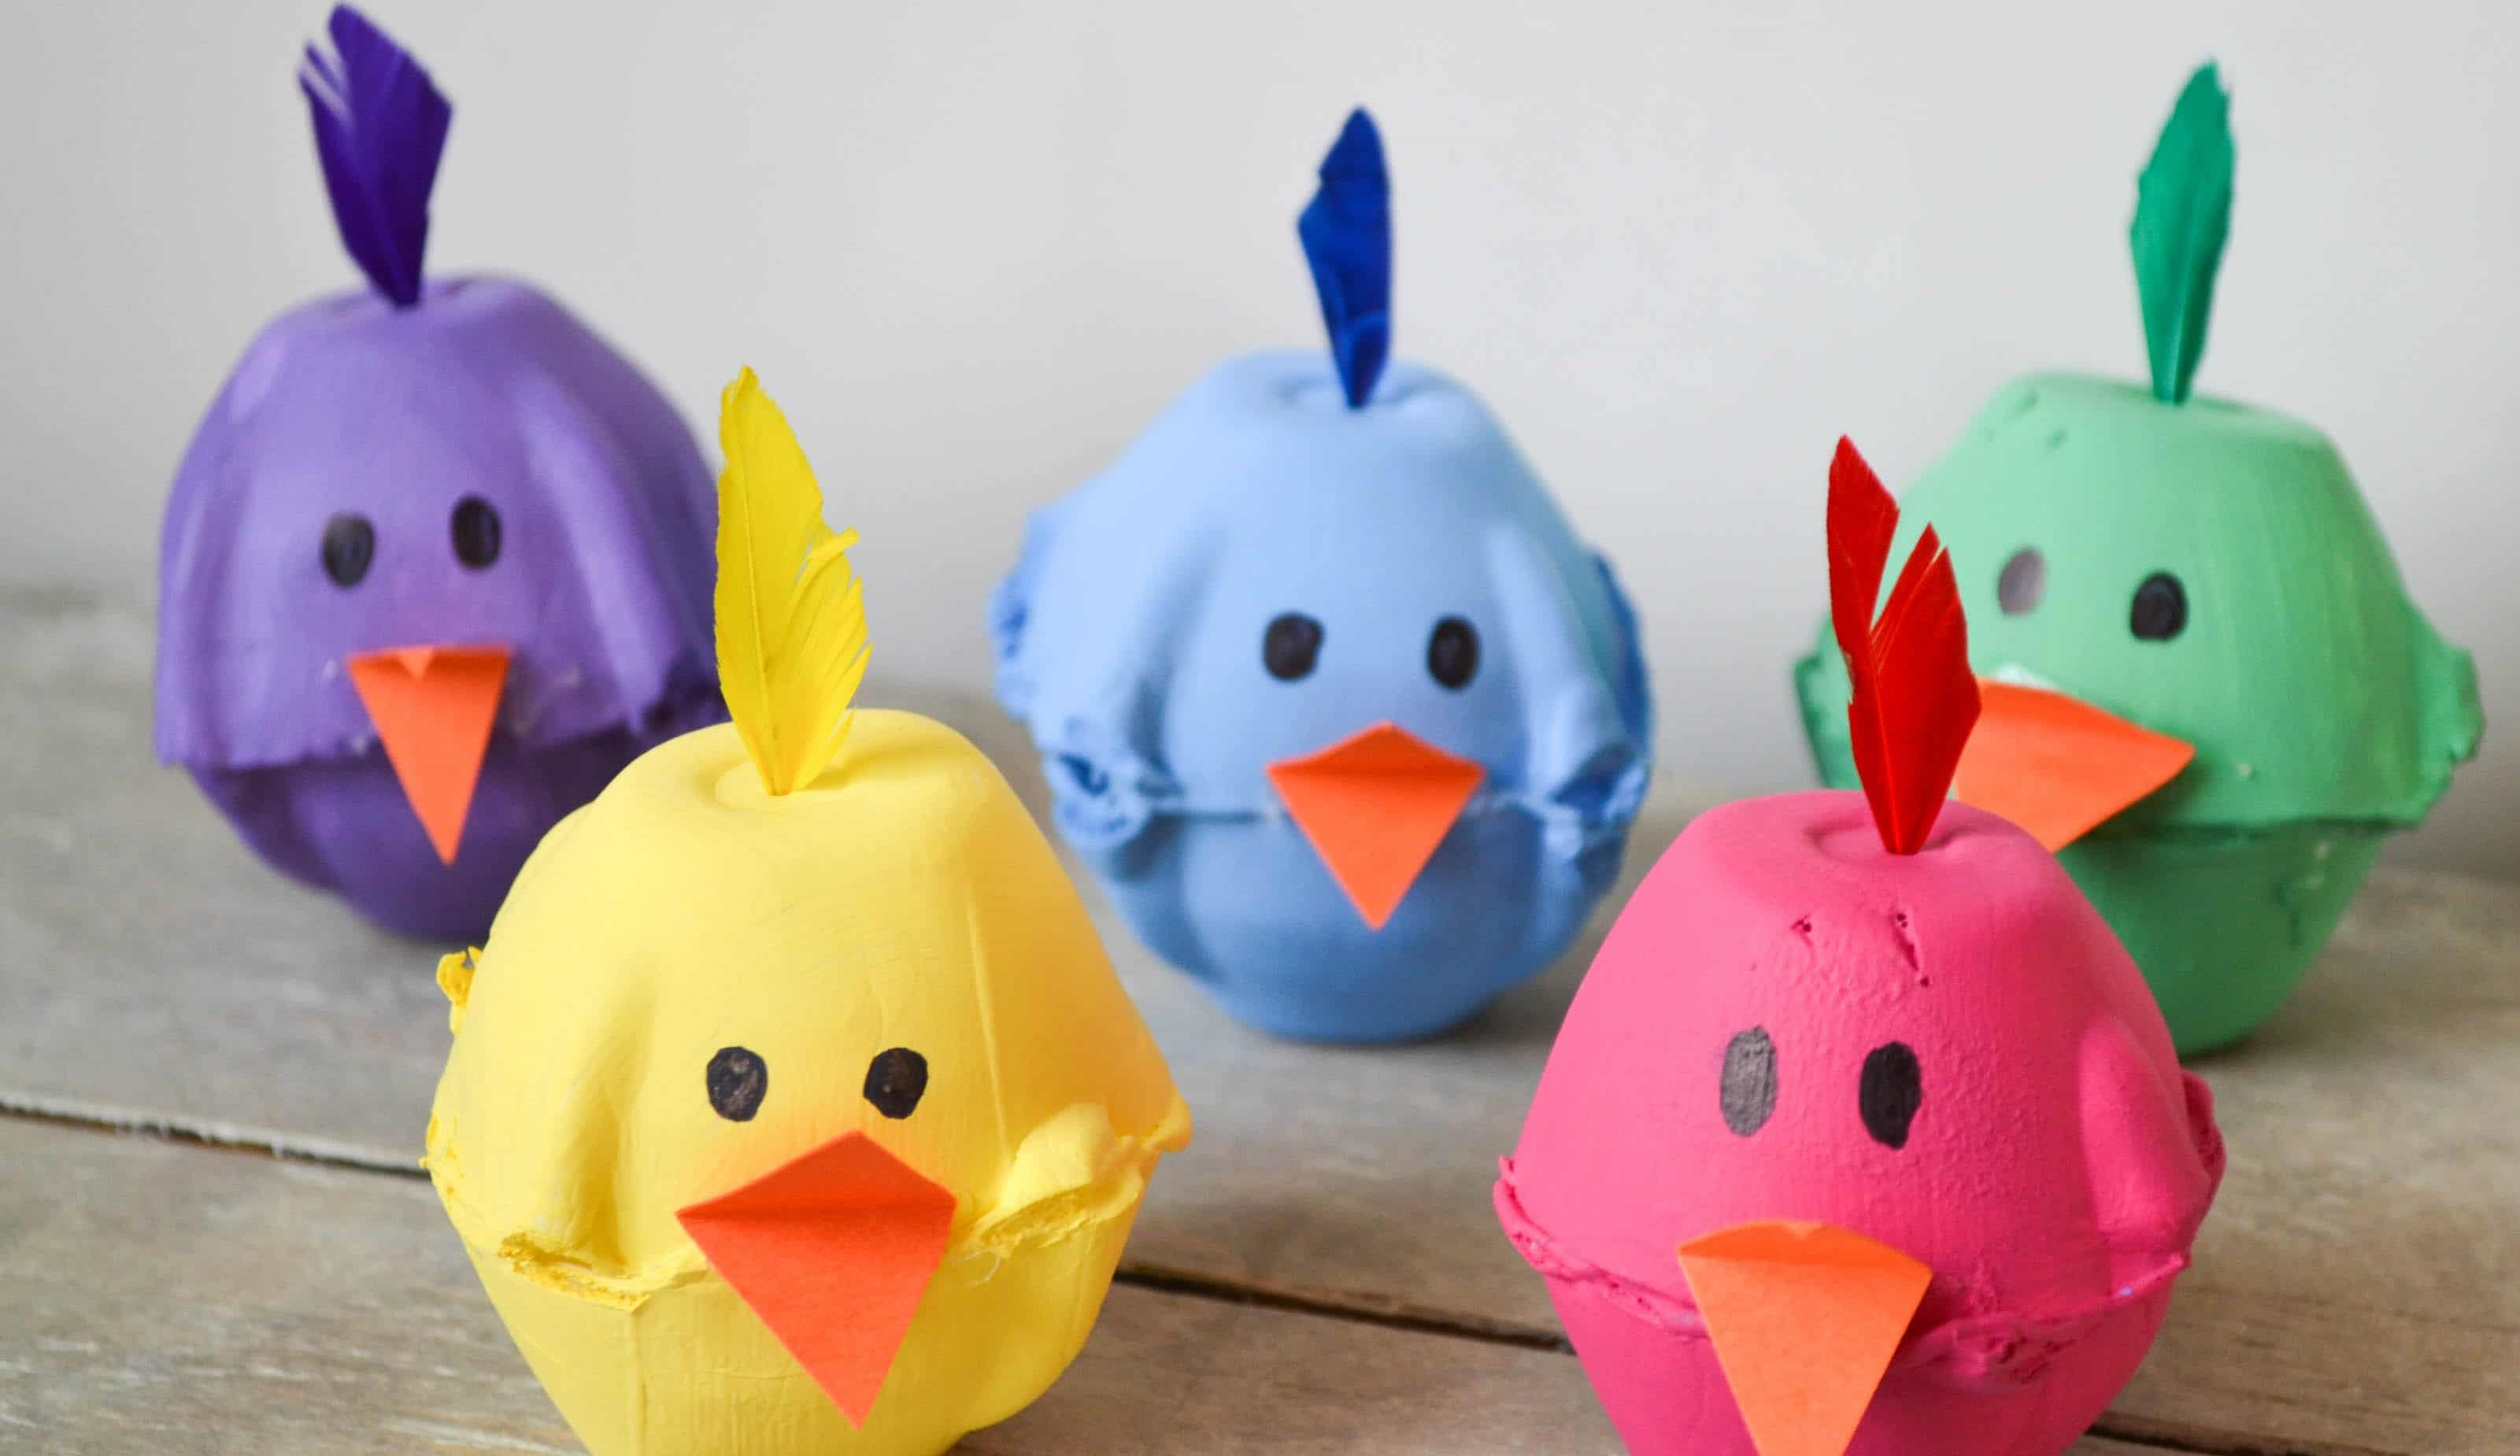 22+ Construction paper easter crafts for toddlers ideas in 2021